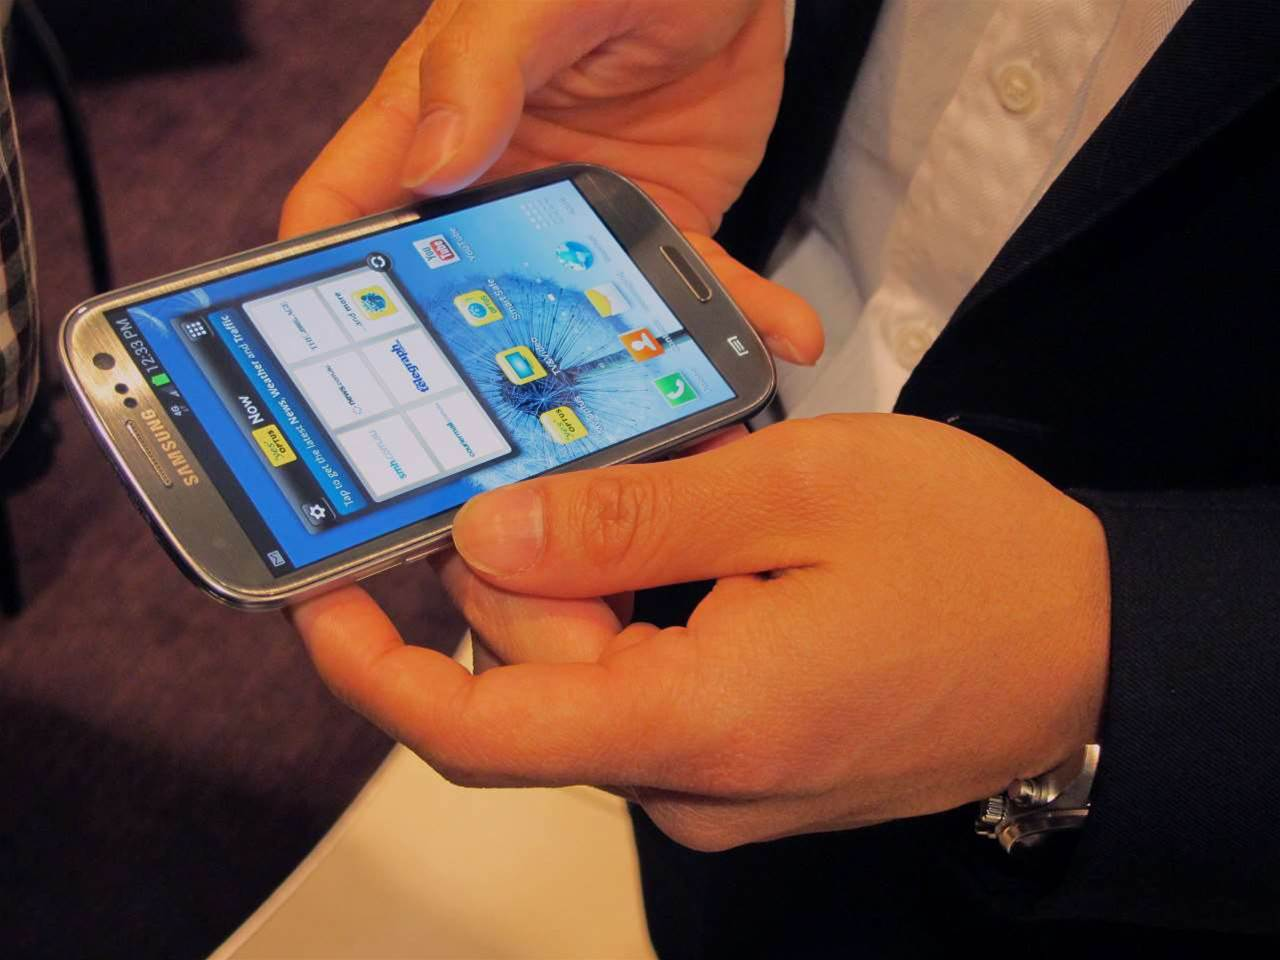 In Pictures: Optus launches 4G network, Samsung Galaxy S III 4G